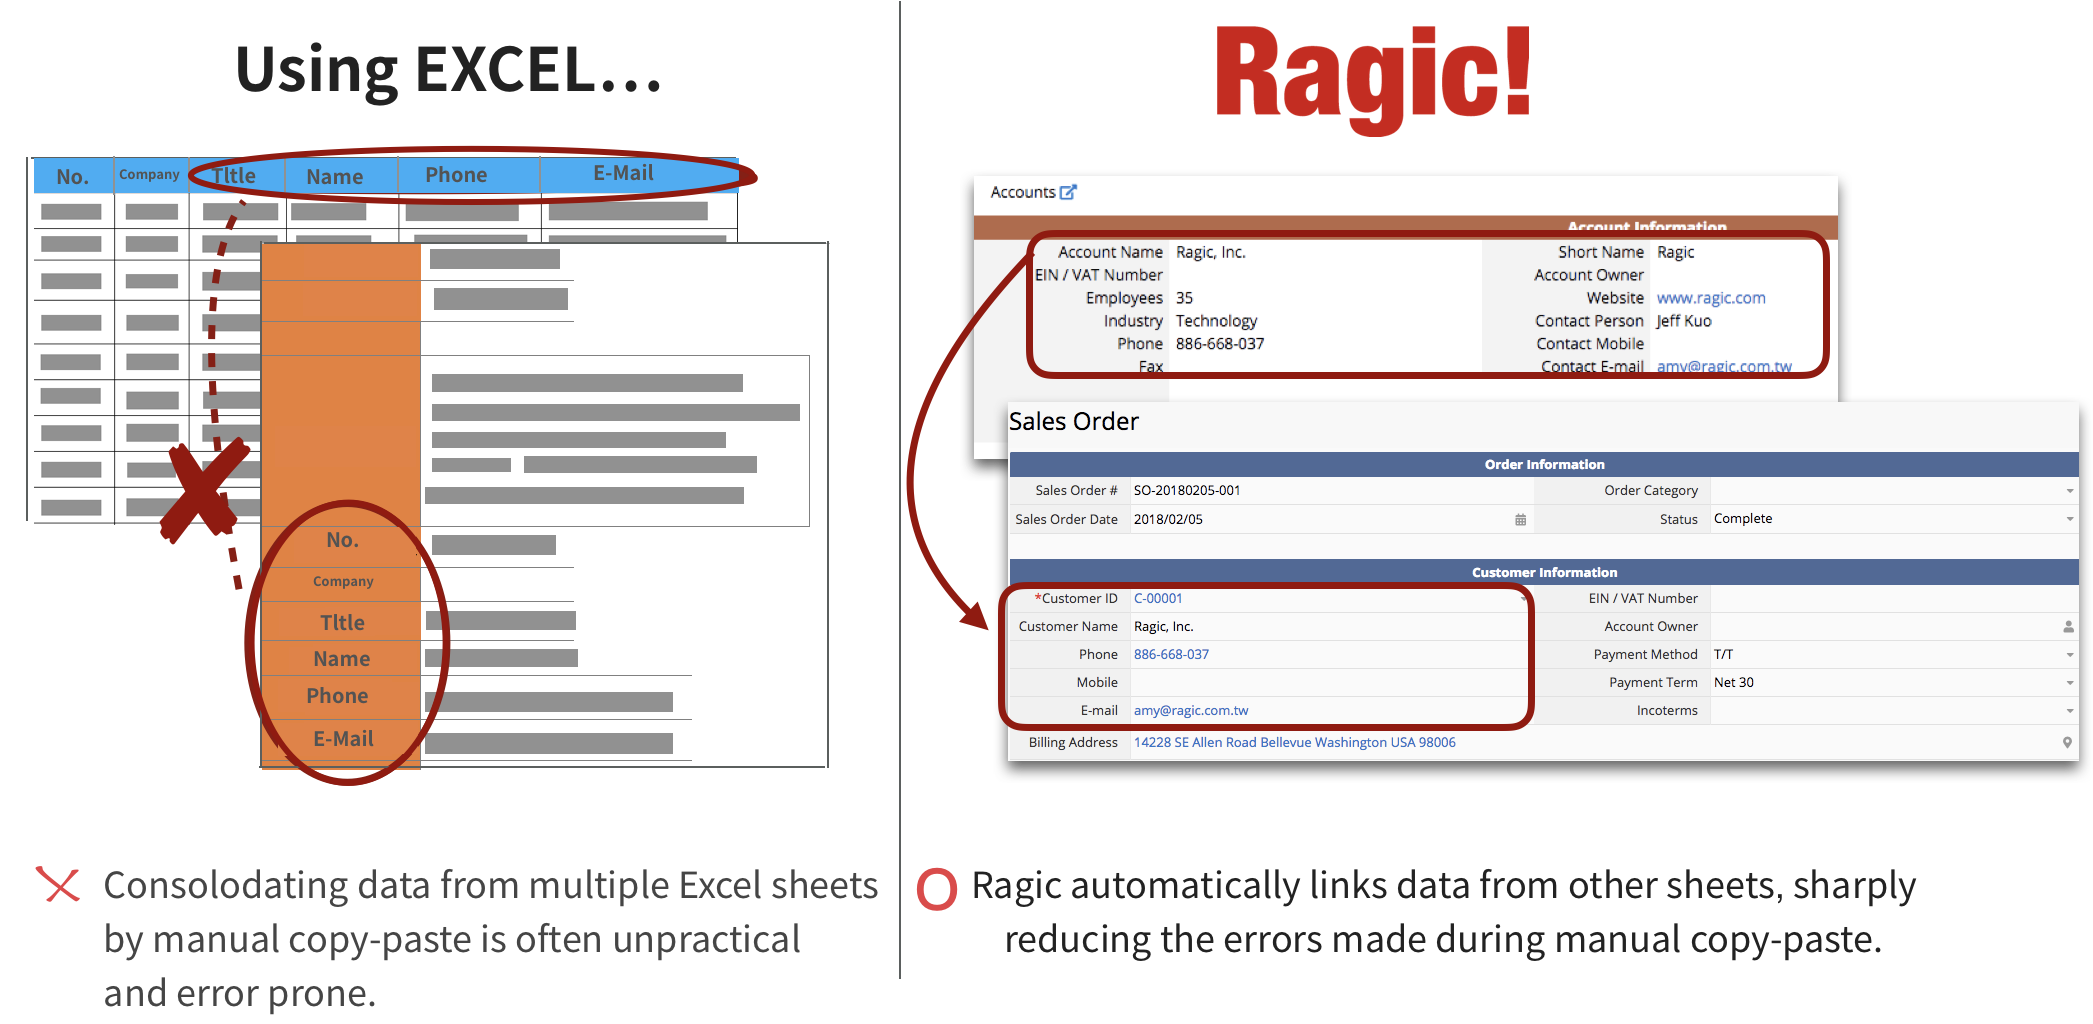 Consolodating data from multiple Excel sheets by manual copy-paste is often unpractical and error prone.